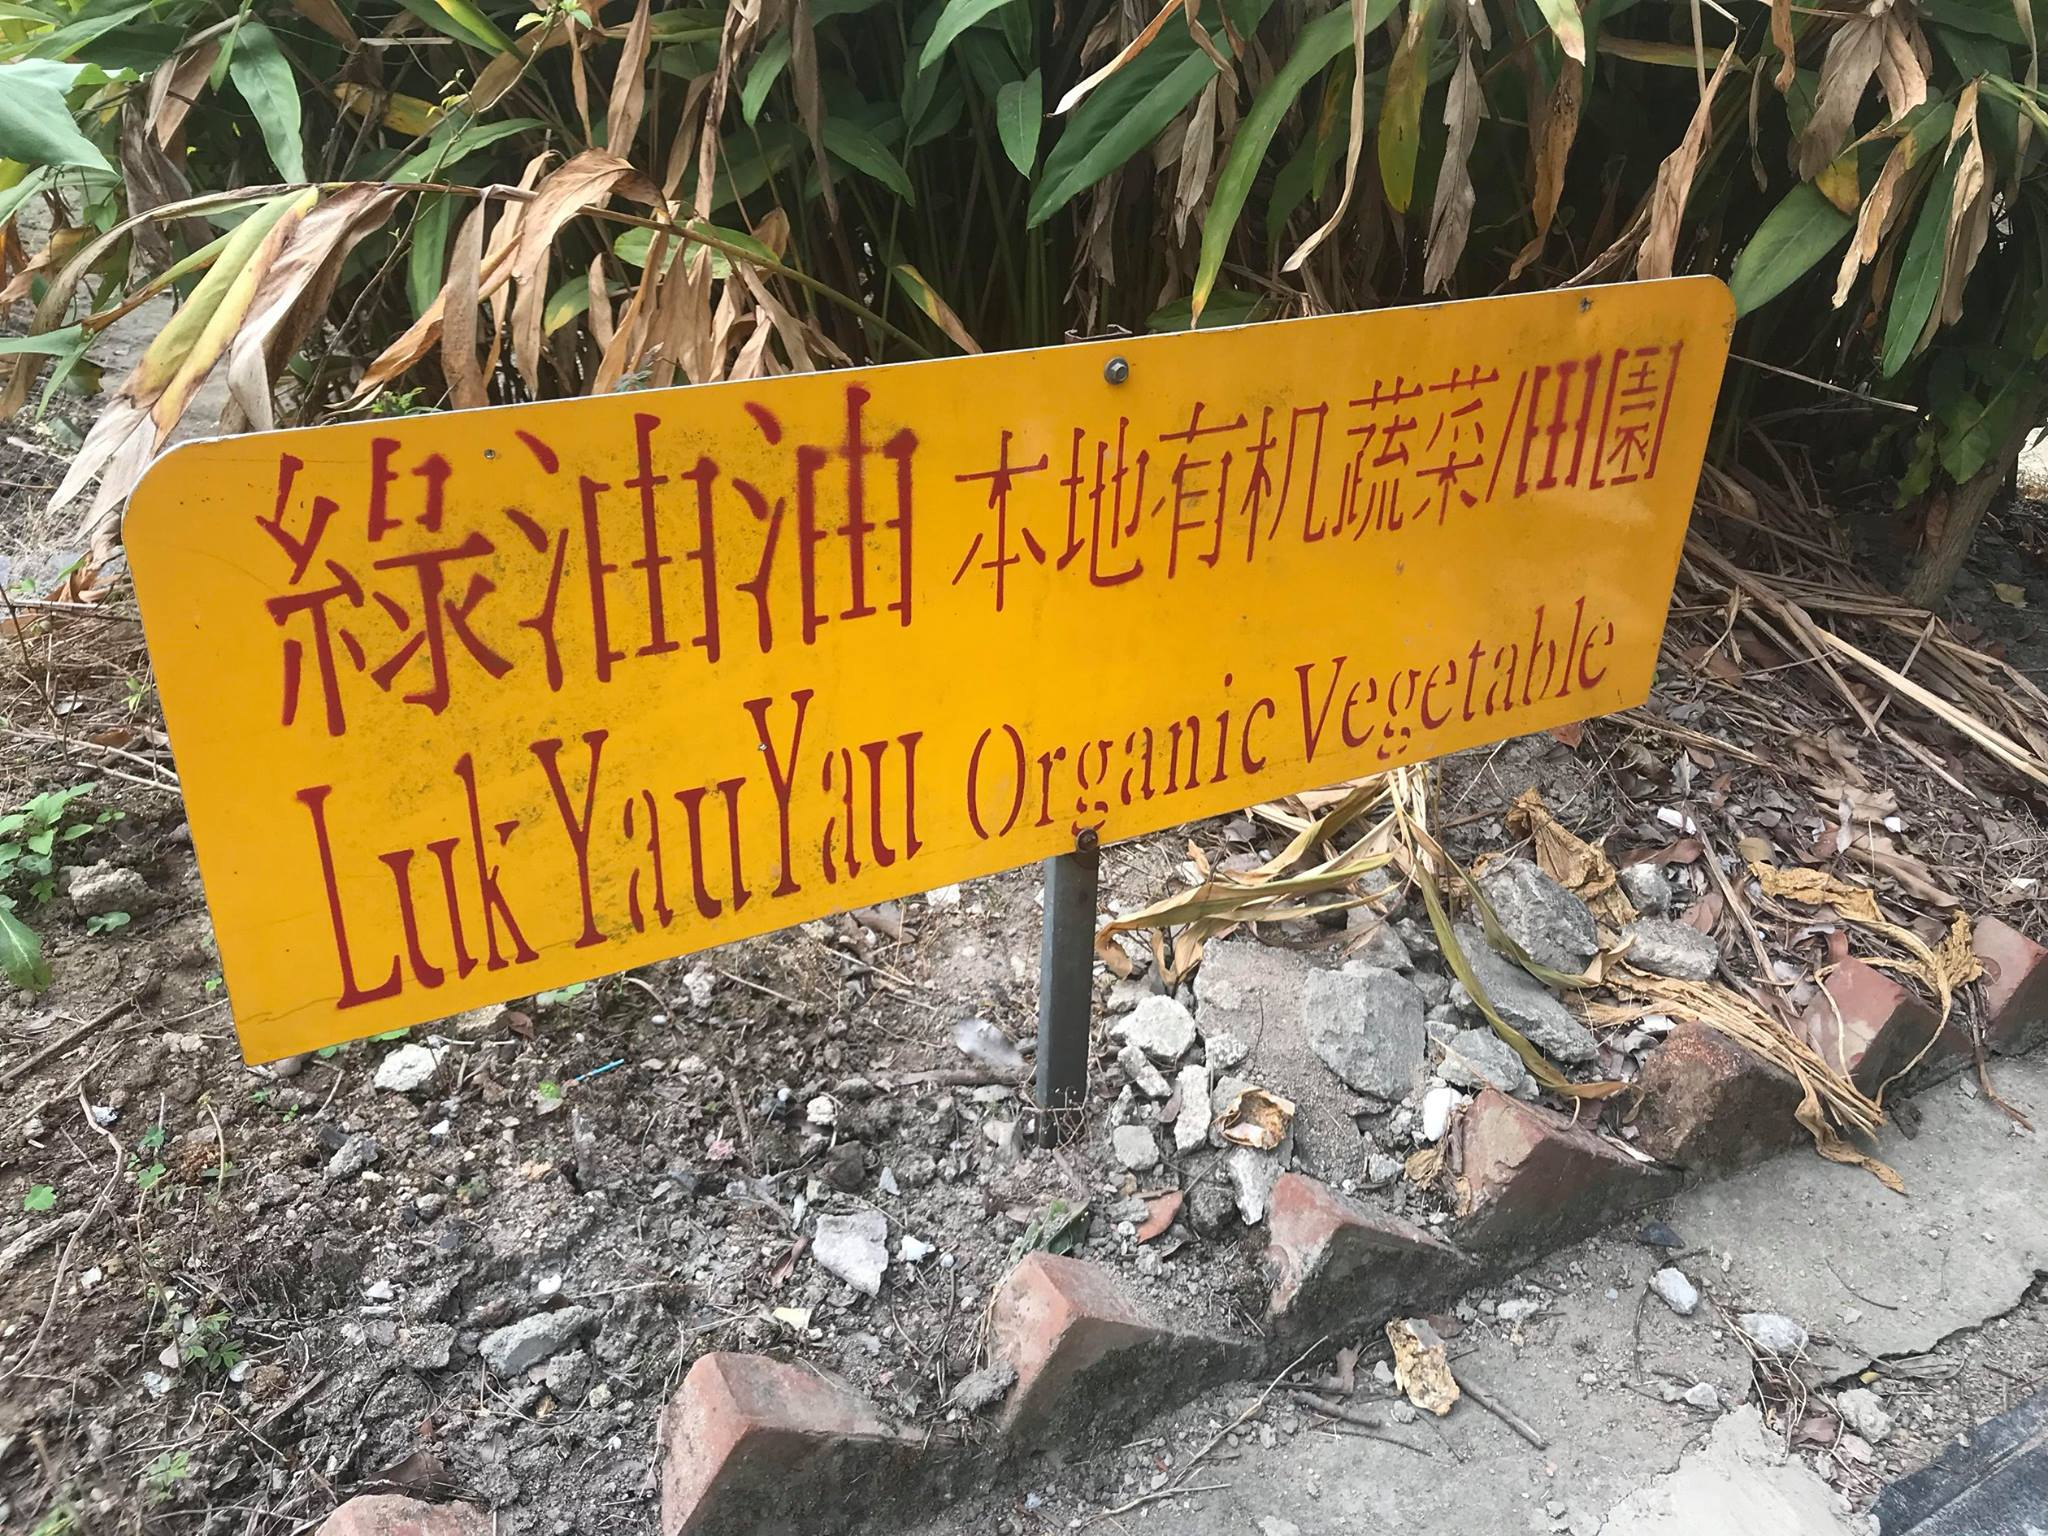 Visit to Luk Yau Yau Organic Farming  - Photo - 1